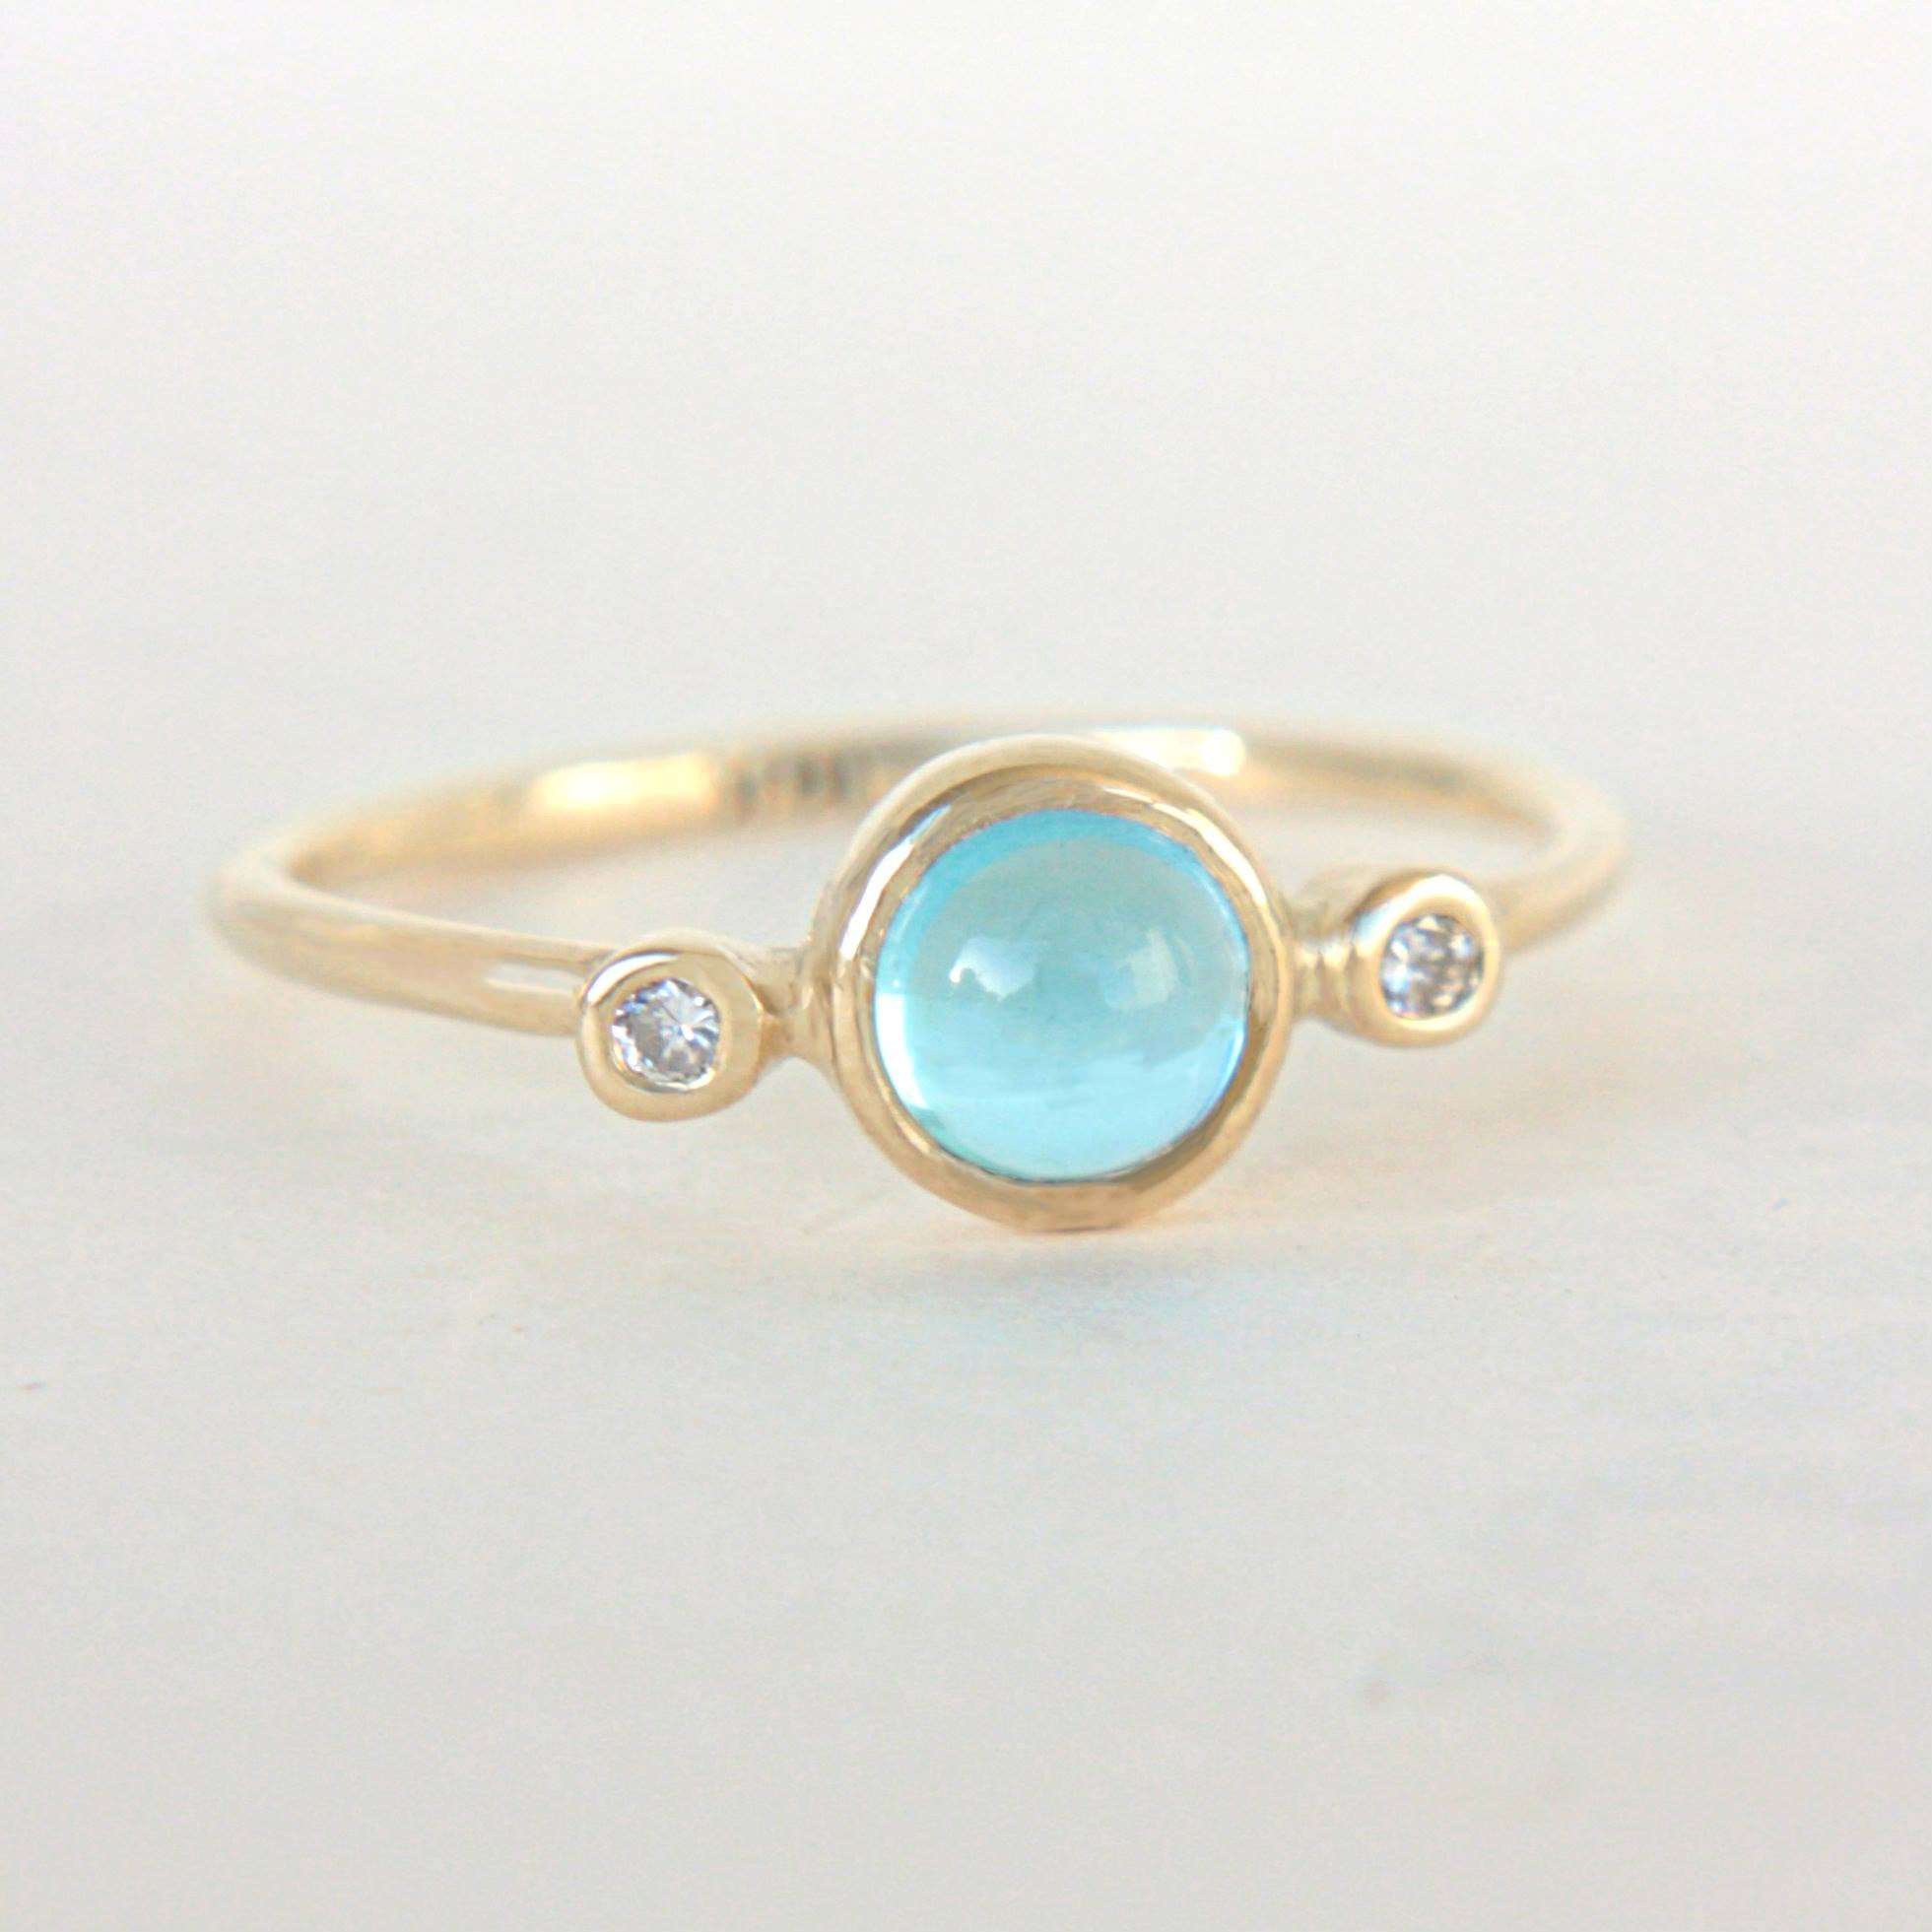 Blue Topaz and Diamond Ring 14k Yellow Gold - Manari Design